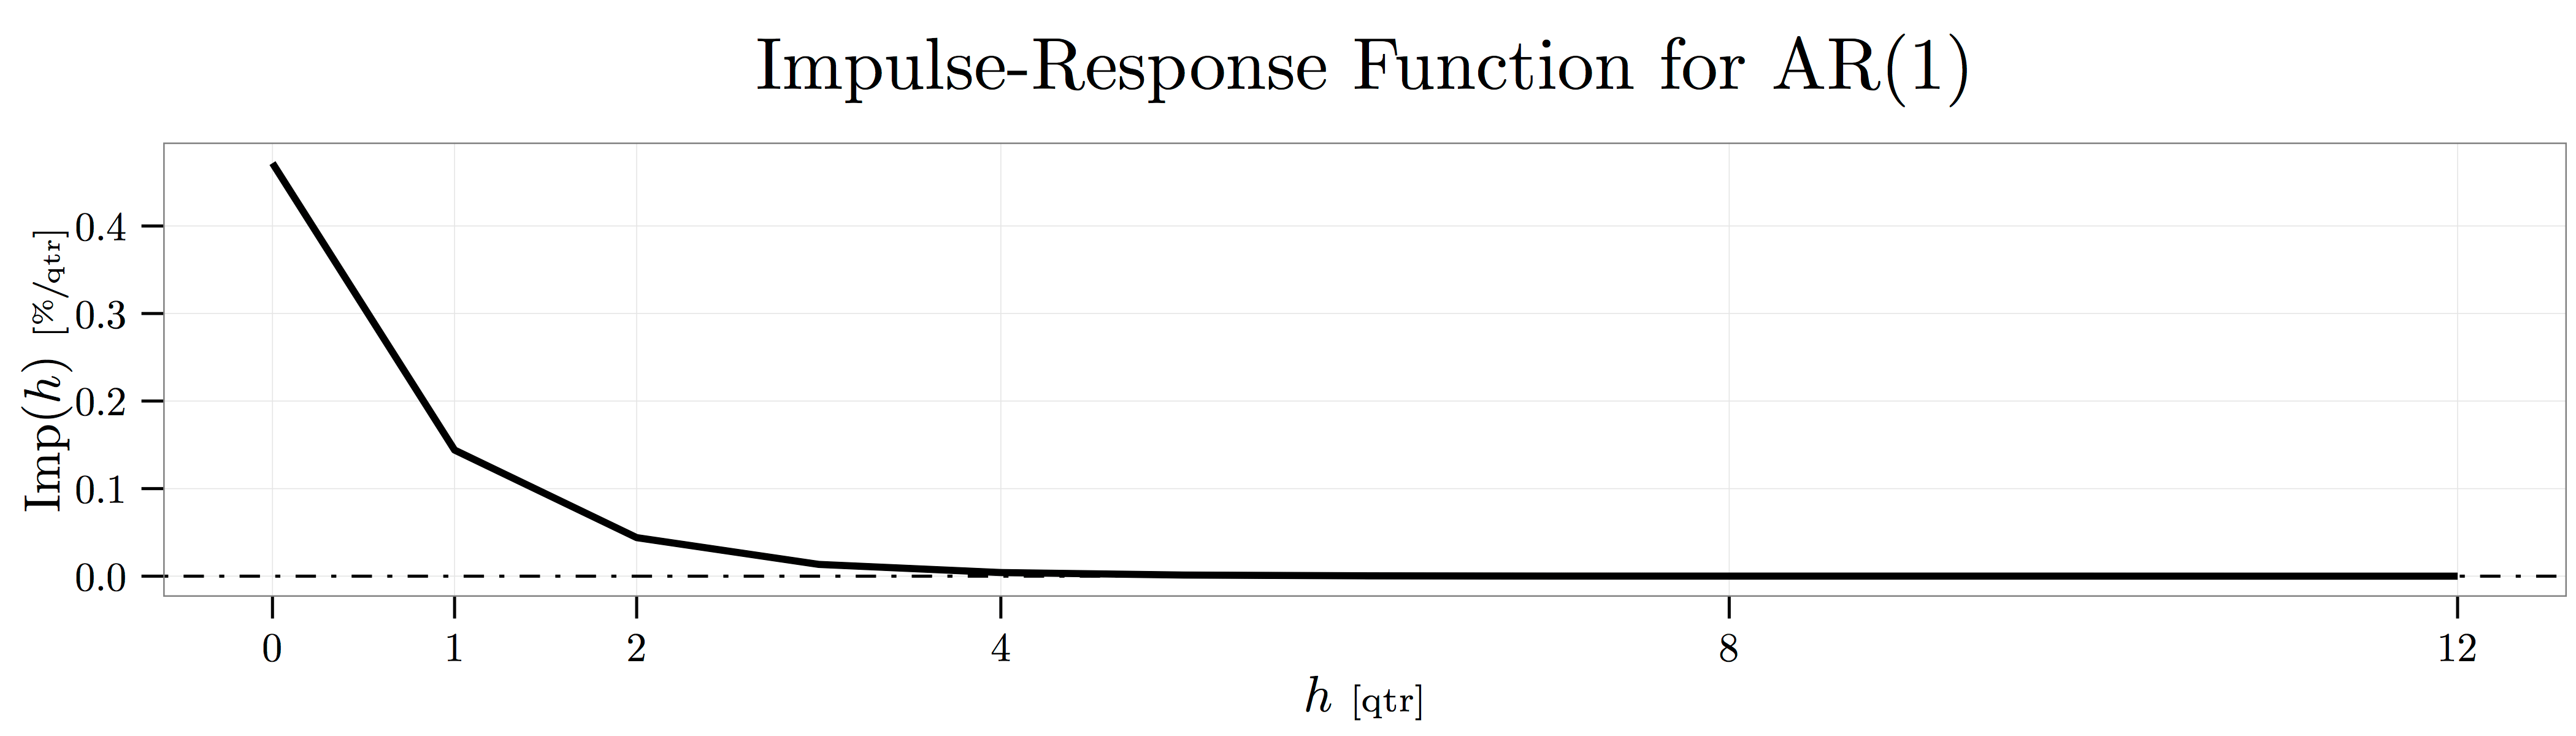 Impulse-Response Functions for VARs | Research Notebook